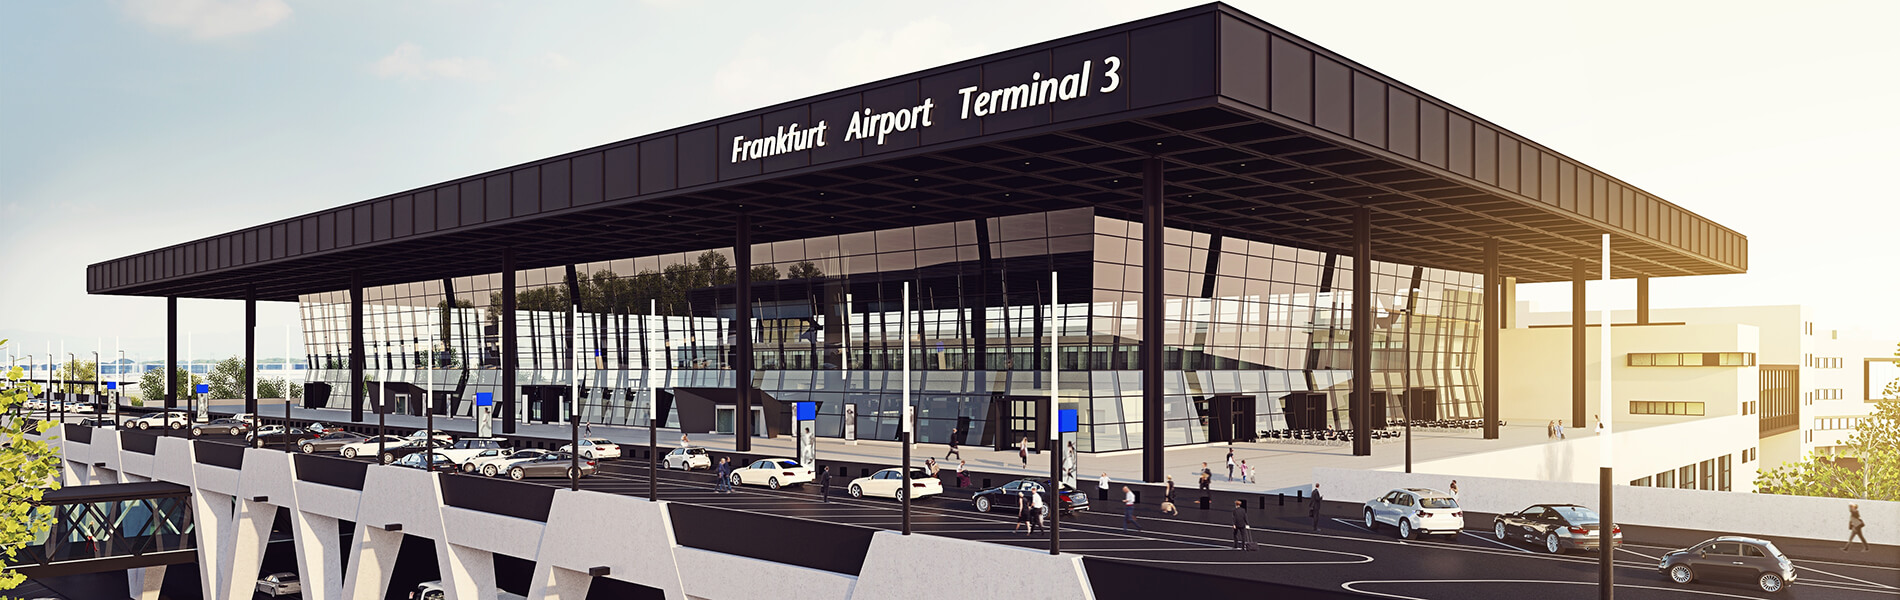 Current Infrastructure Projects: Frankfurt Airport: Fraport is building Terminal 3